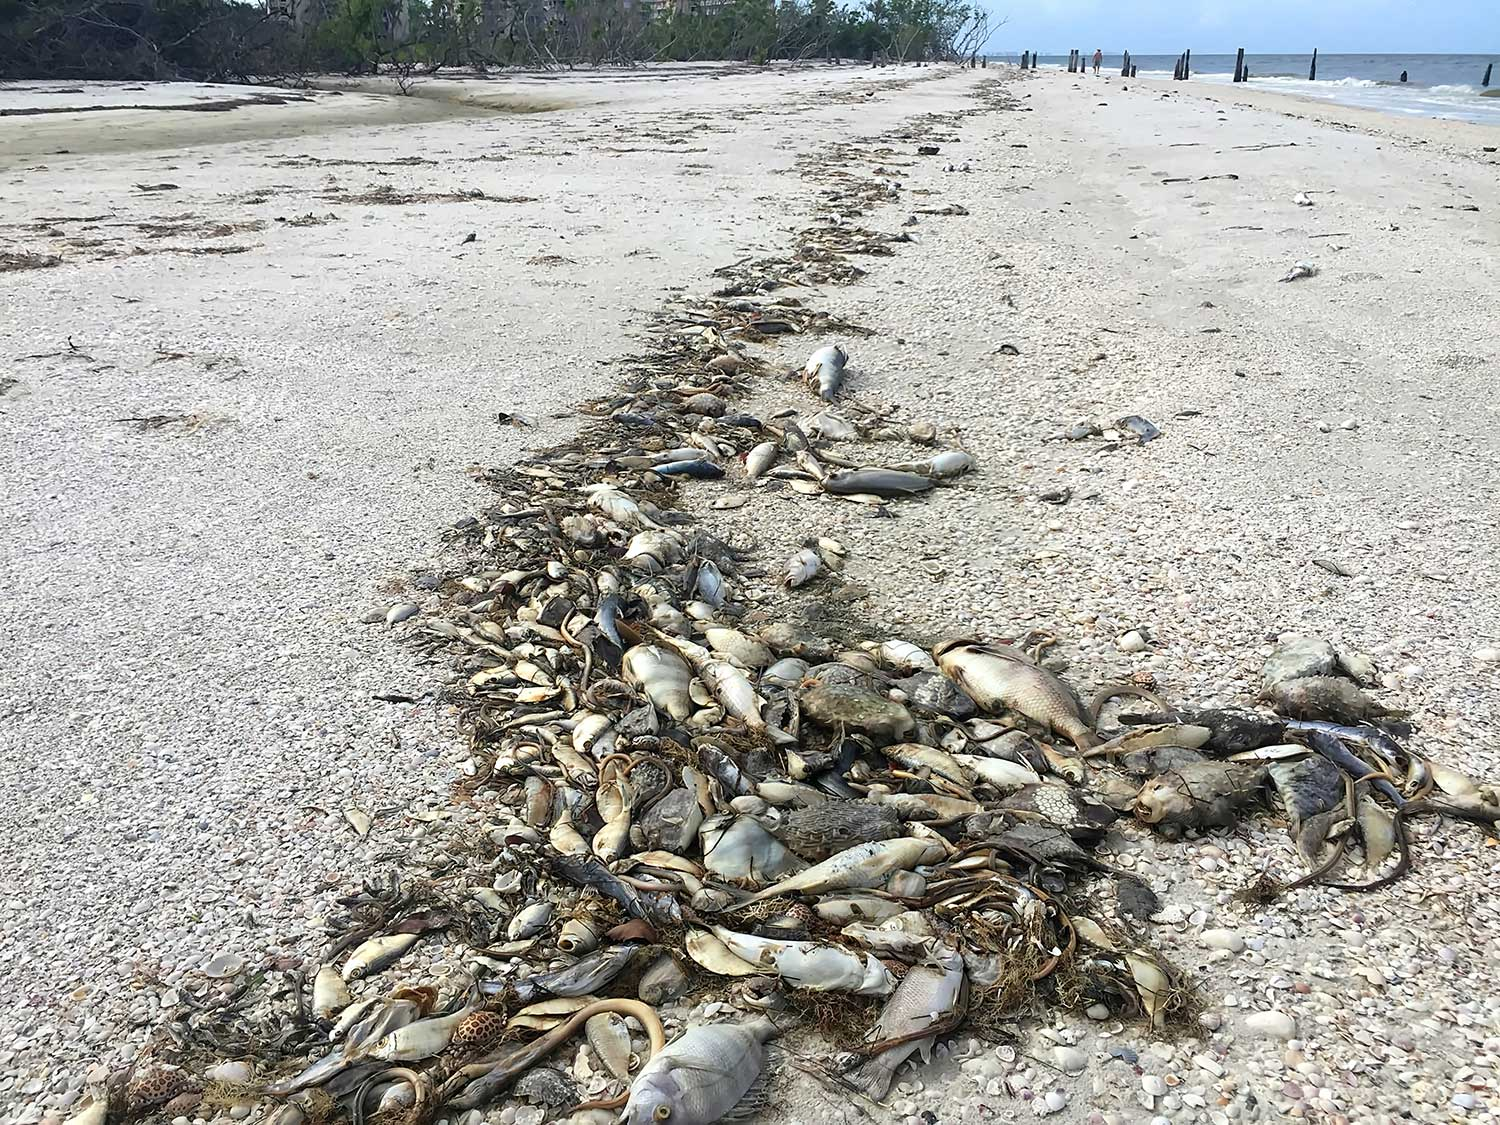 dead fish wash ashore due to red tide